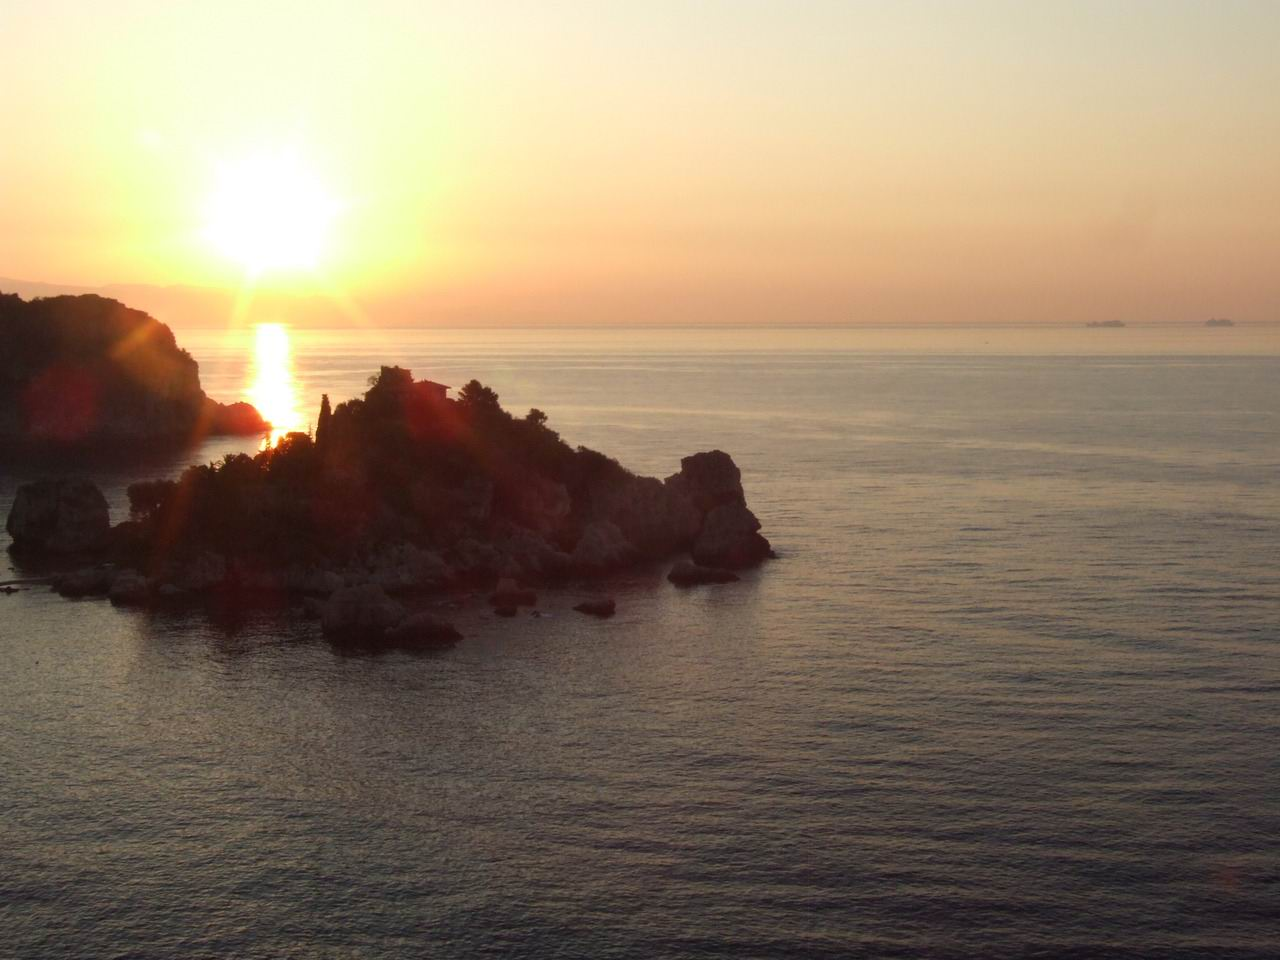 Dawn Sunset-Isola Bella-Taormina-Sicilia-Italy - Creative Commons by gnuckx